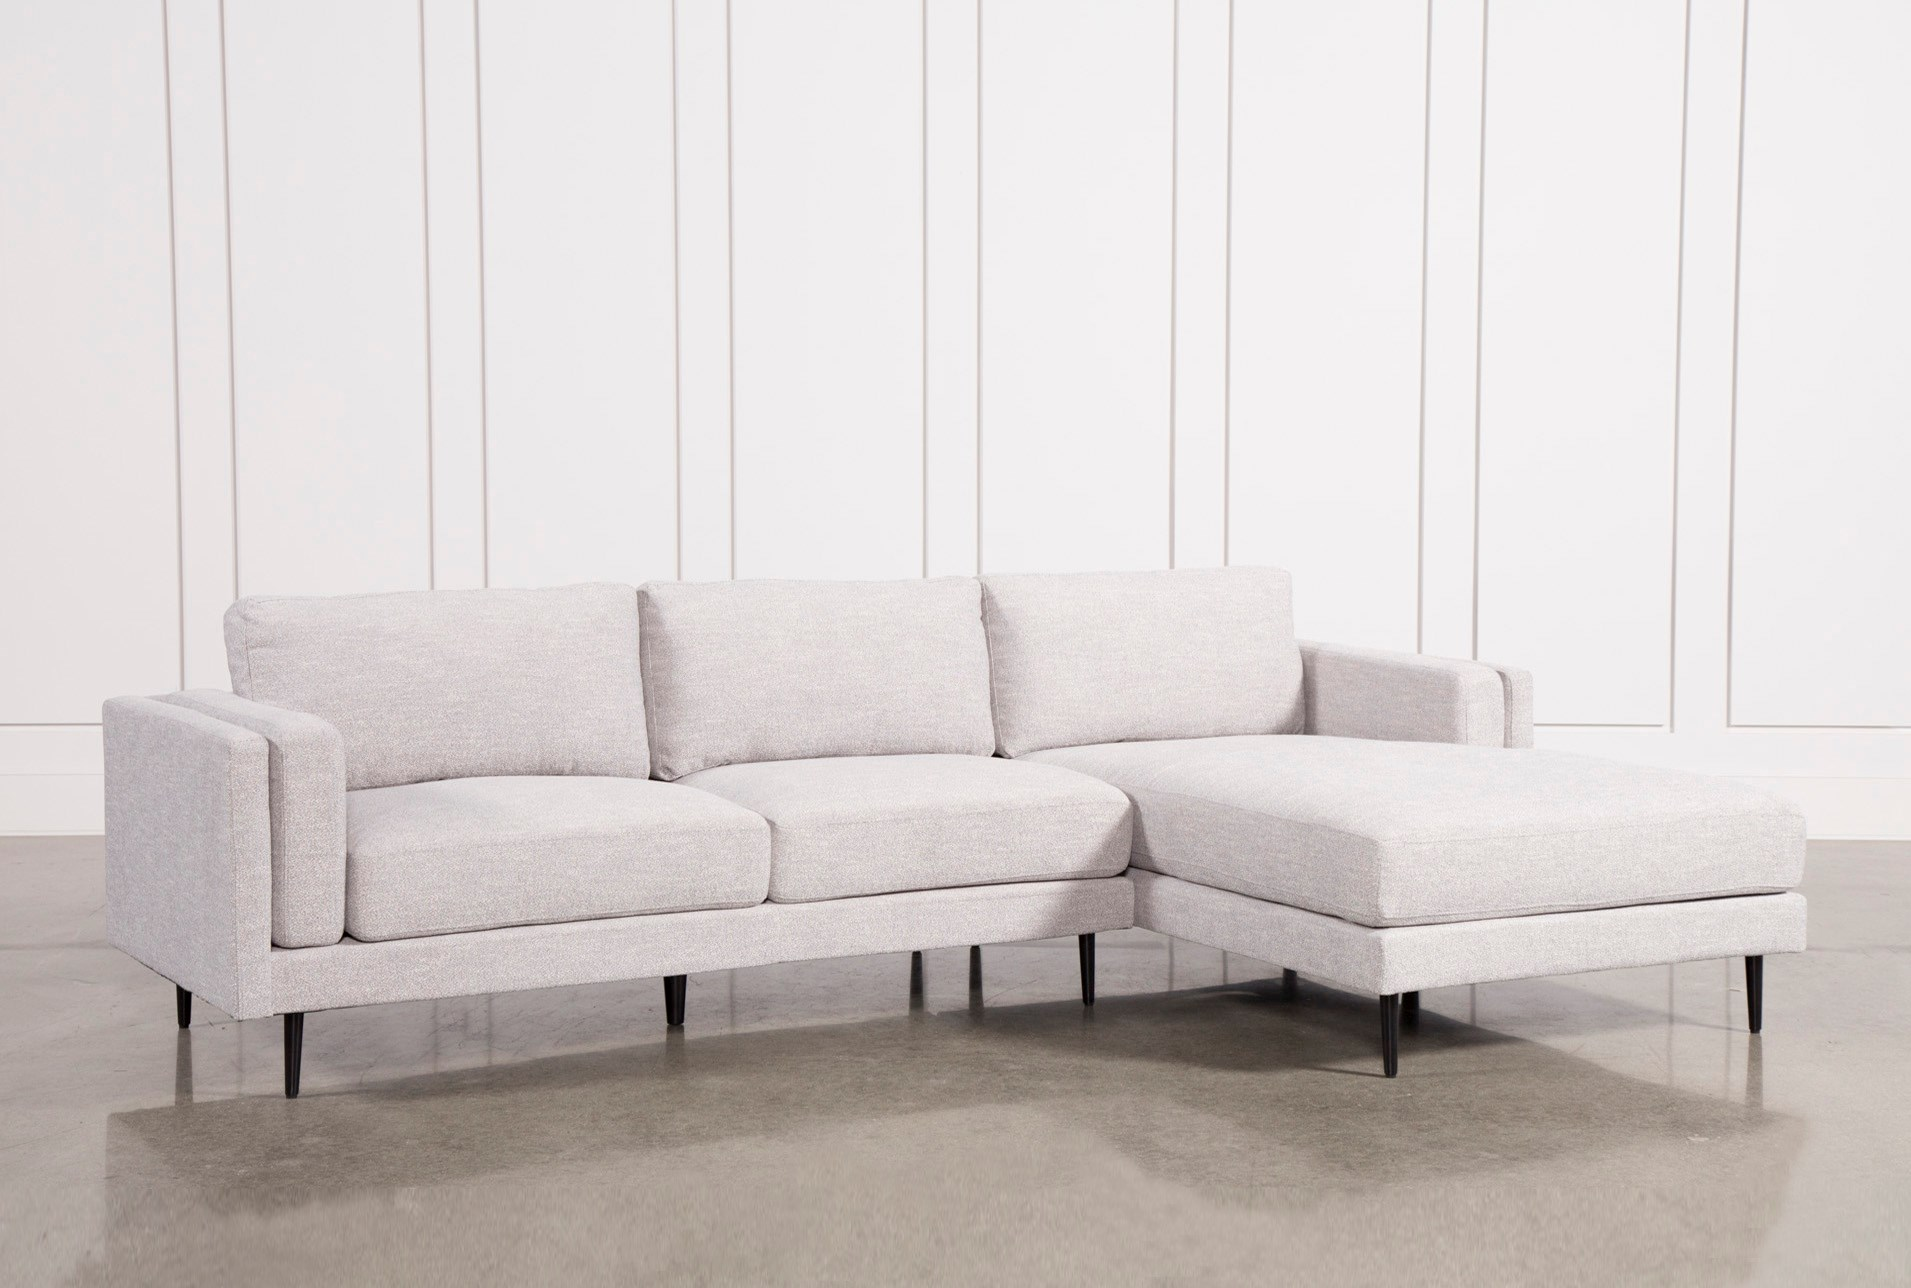 Aquarius Light Grey 2 Piece Sectional W Raf Chaise Qty 1 Has Been Successfully Added To Your Cart